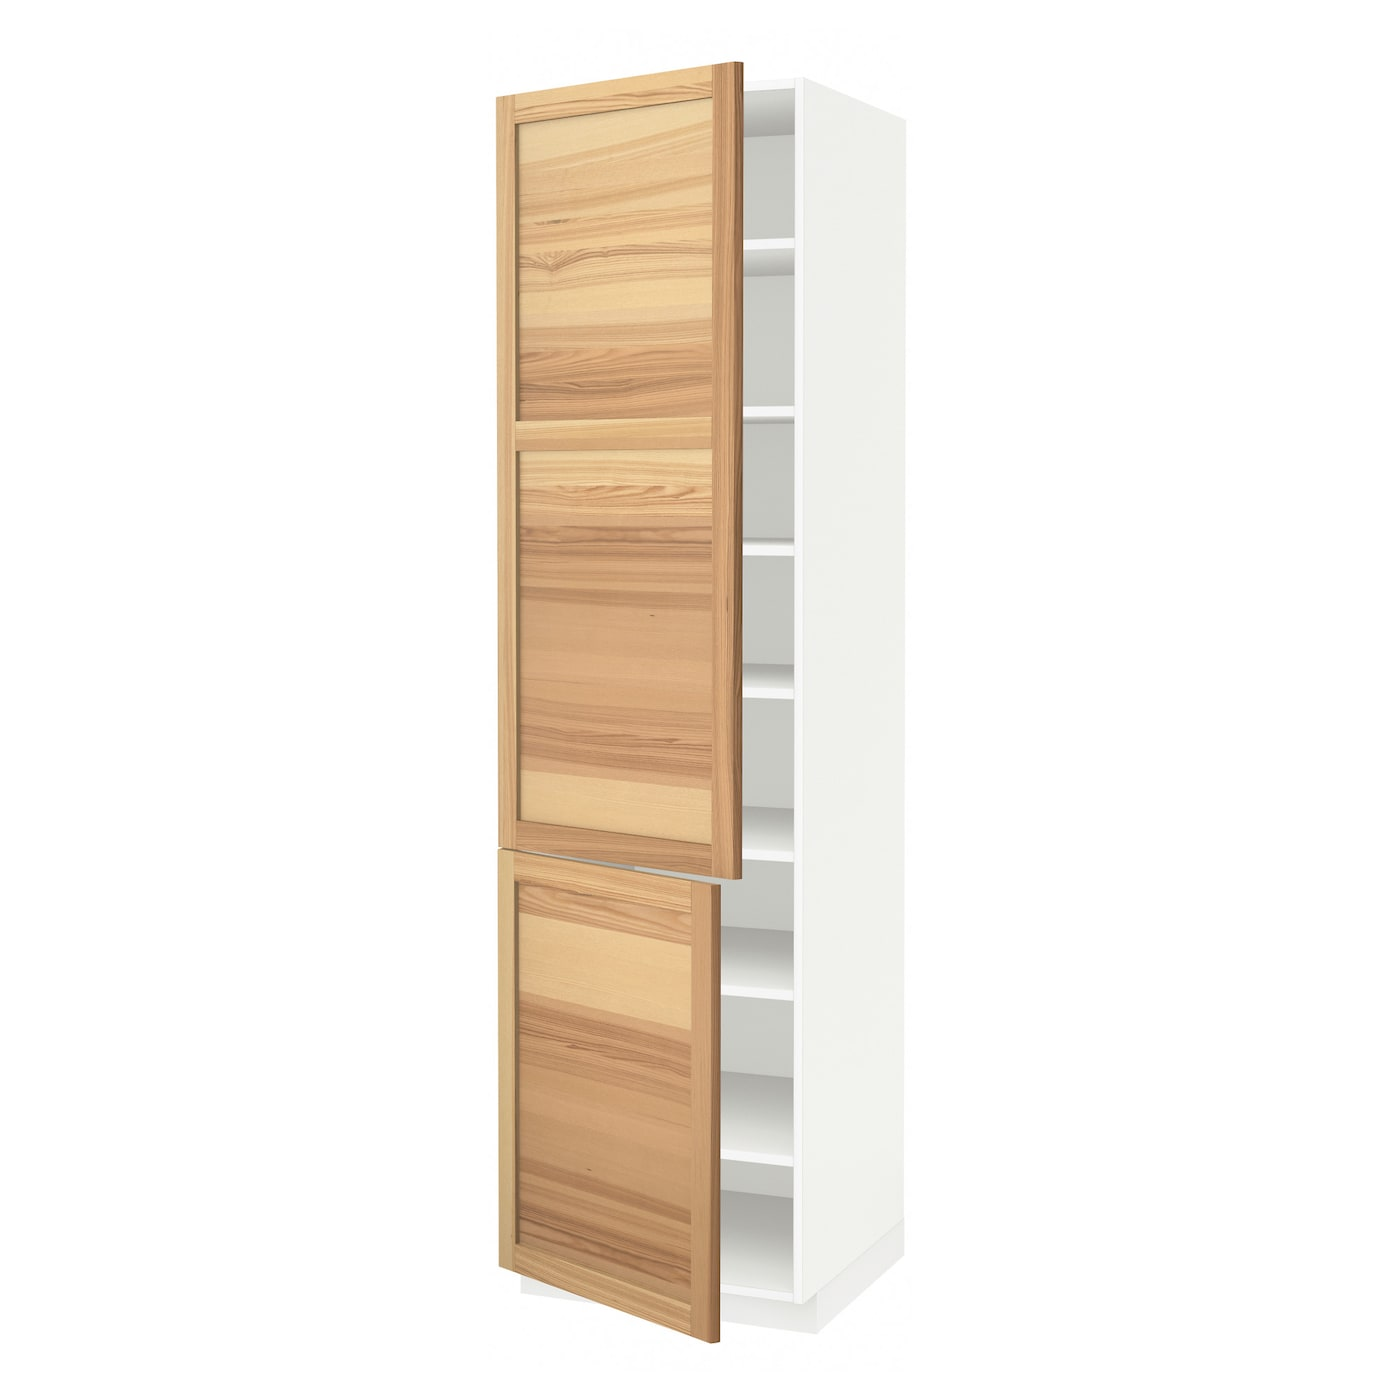 Metod high cabinet with shelves 2 doors white torhamn ash for Kitchen cabinets 700mm high